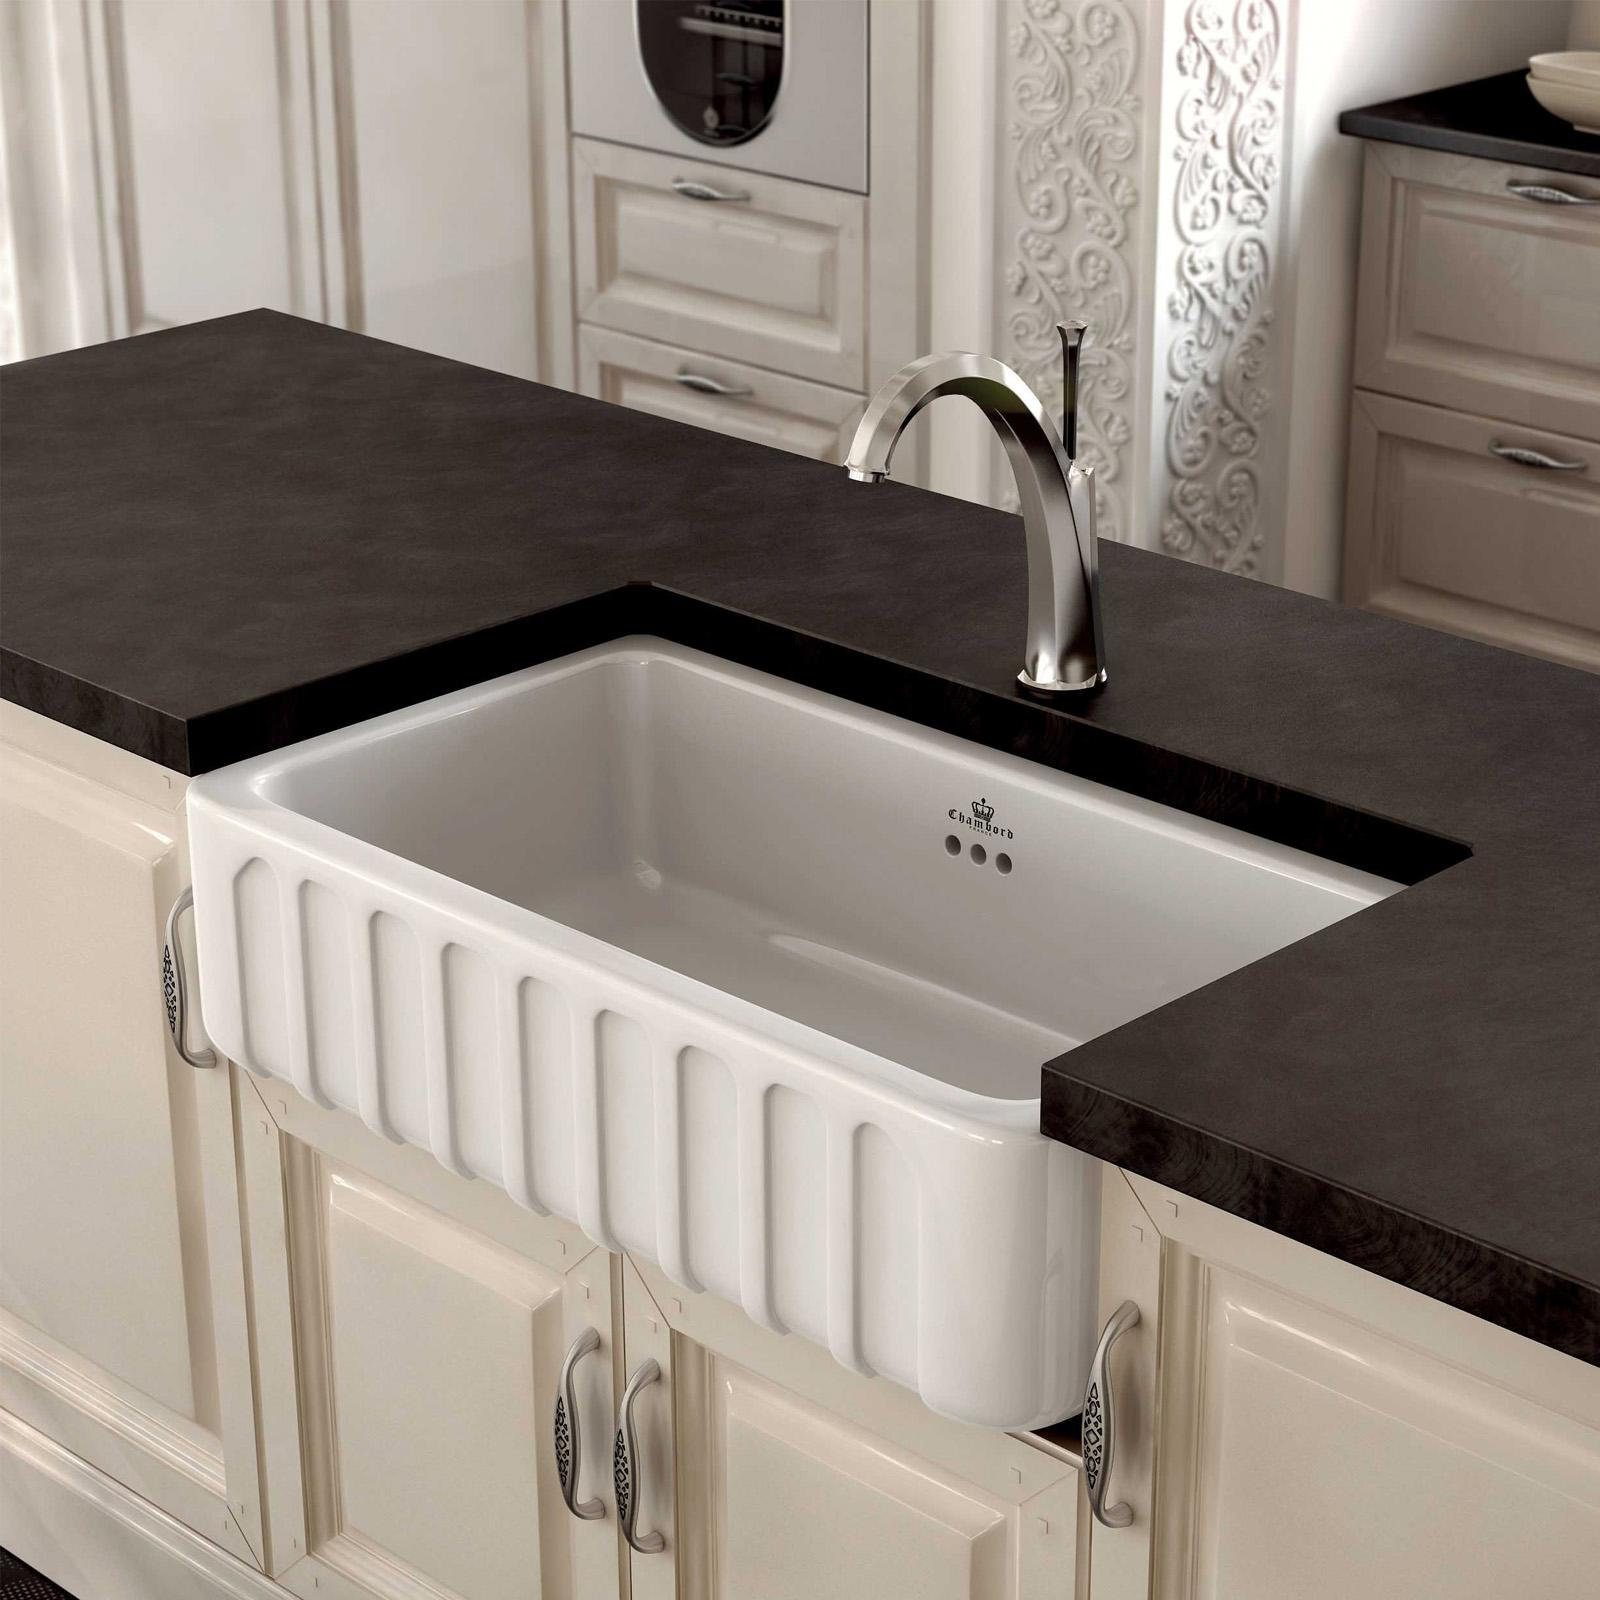 High-quality sink Louis II - single bowl, ceramic - ambience